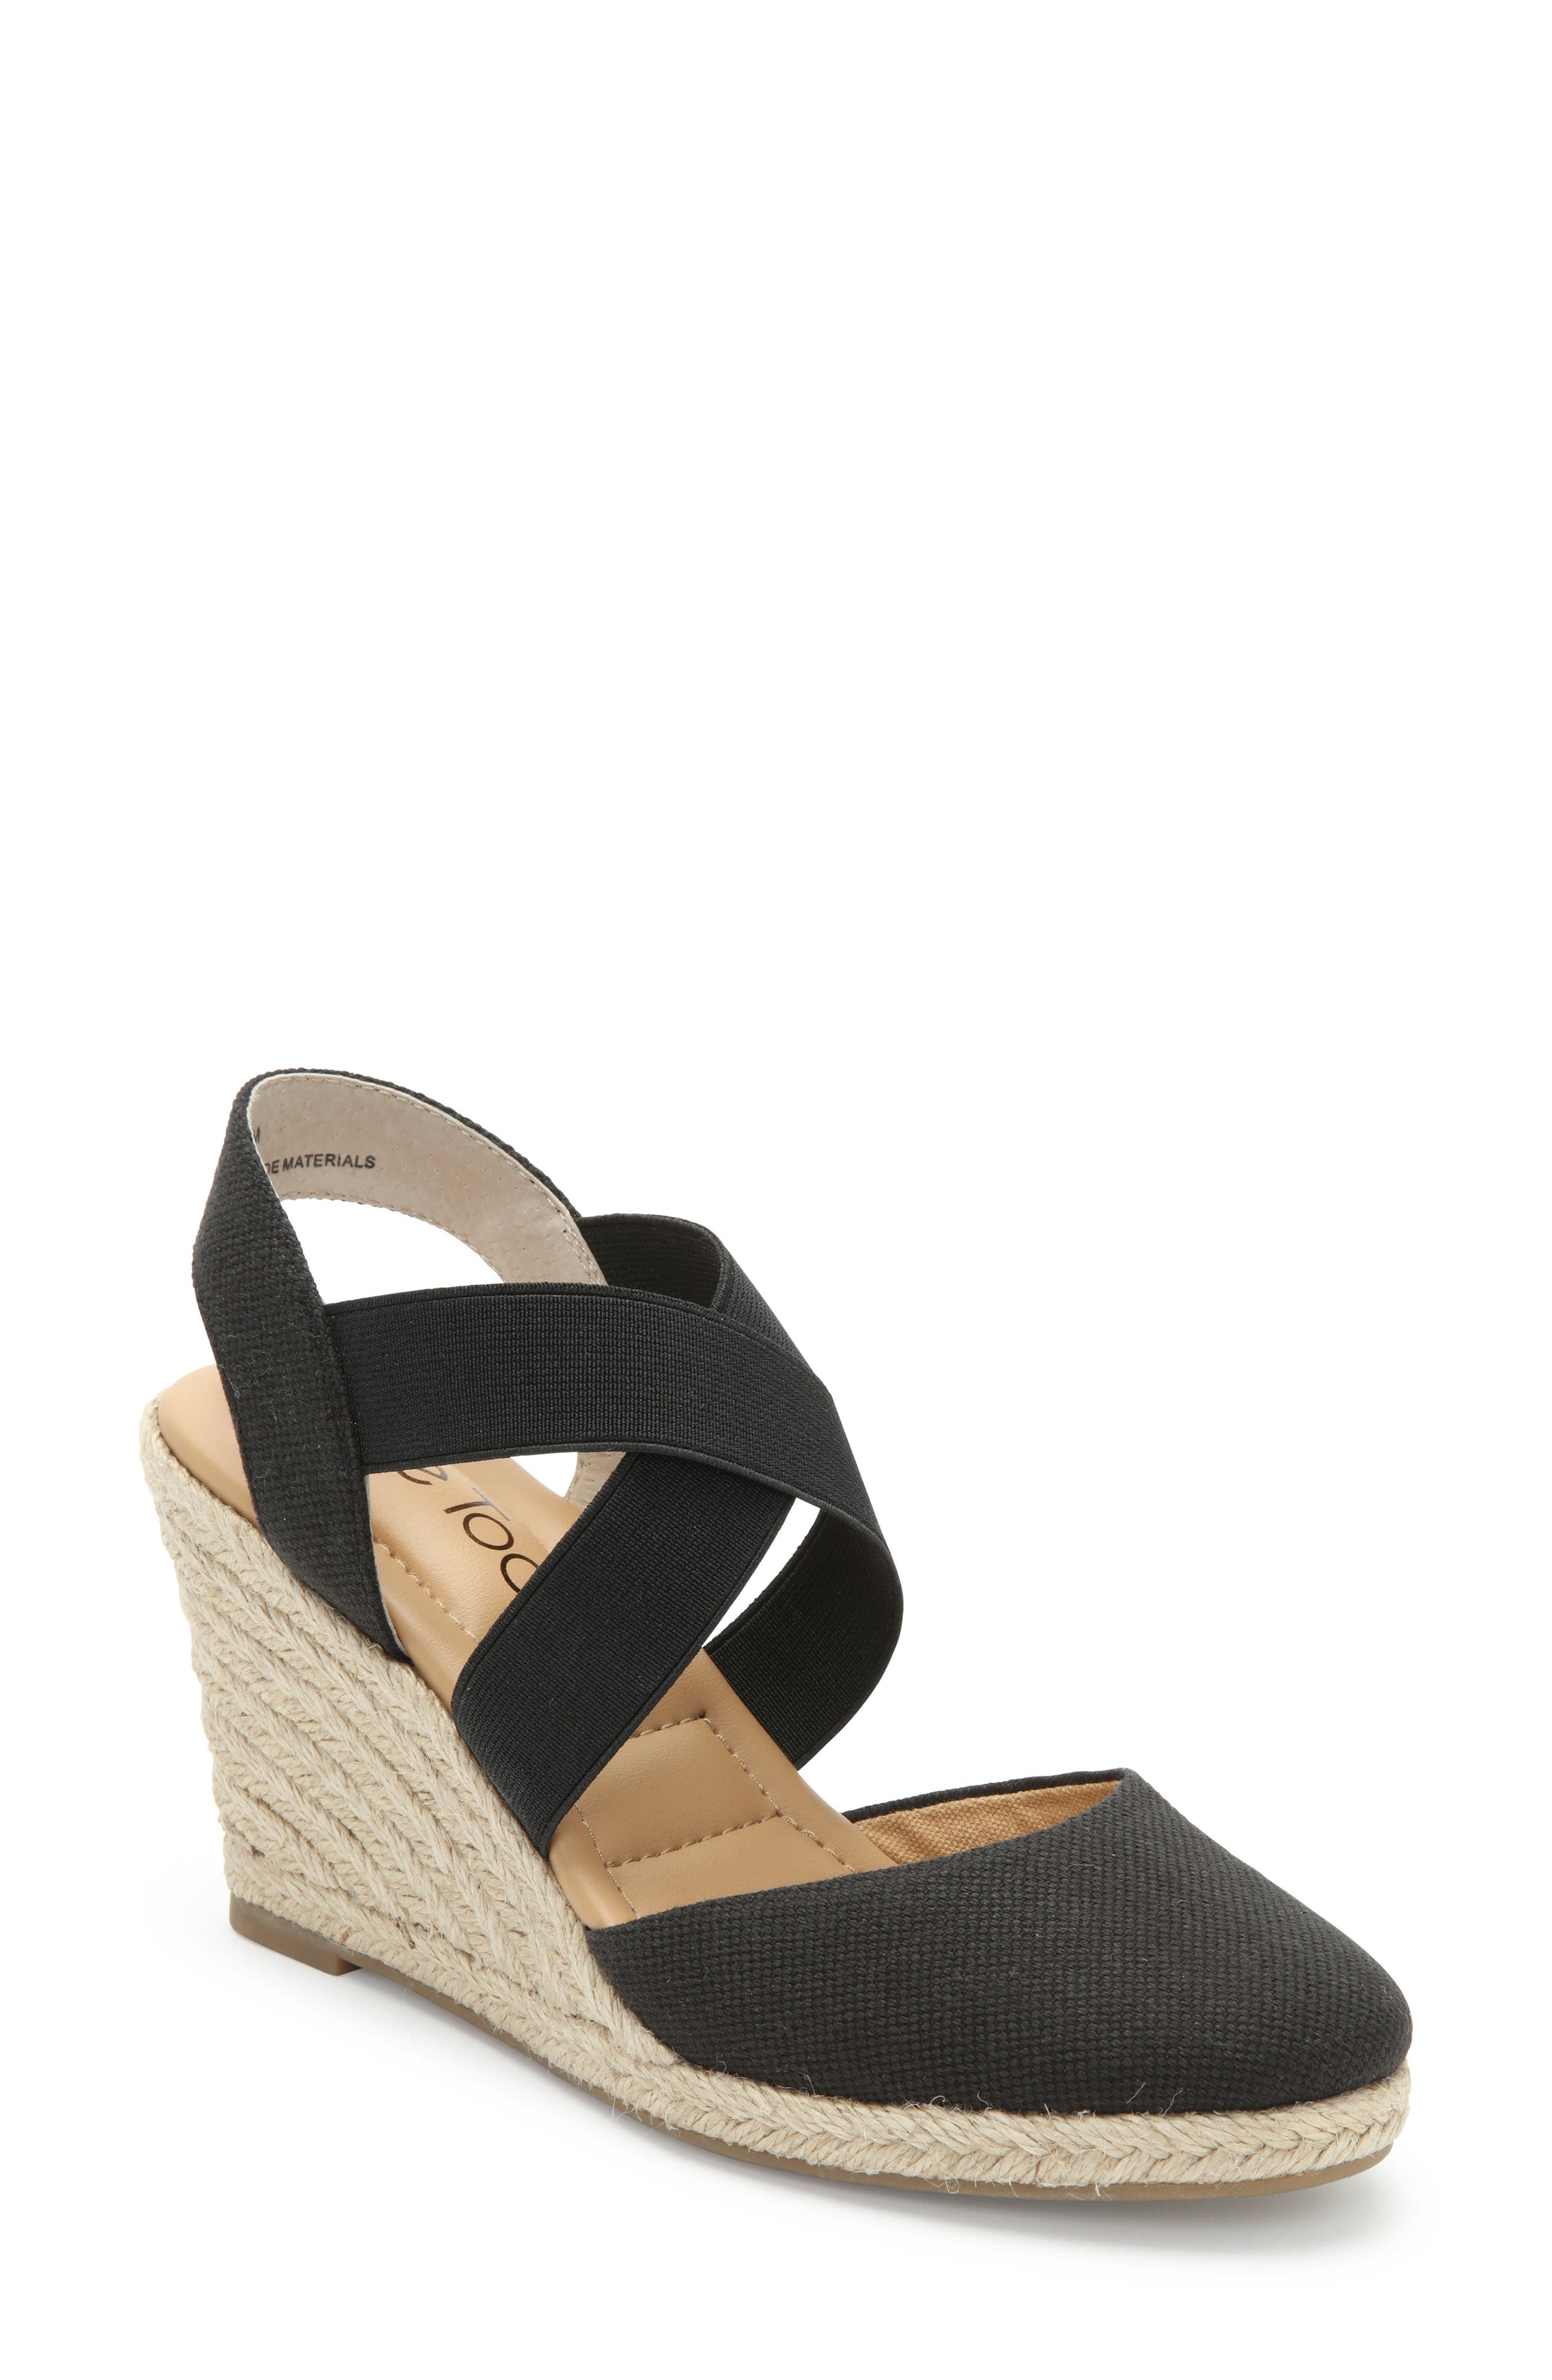 ME TOO, Brinley Espadrille Wedge, Main thumbnail 1, color, BLACK CANVAS